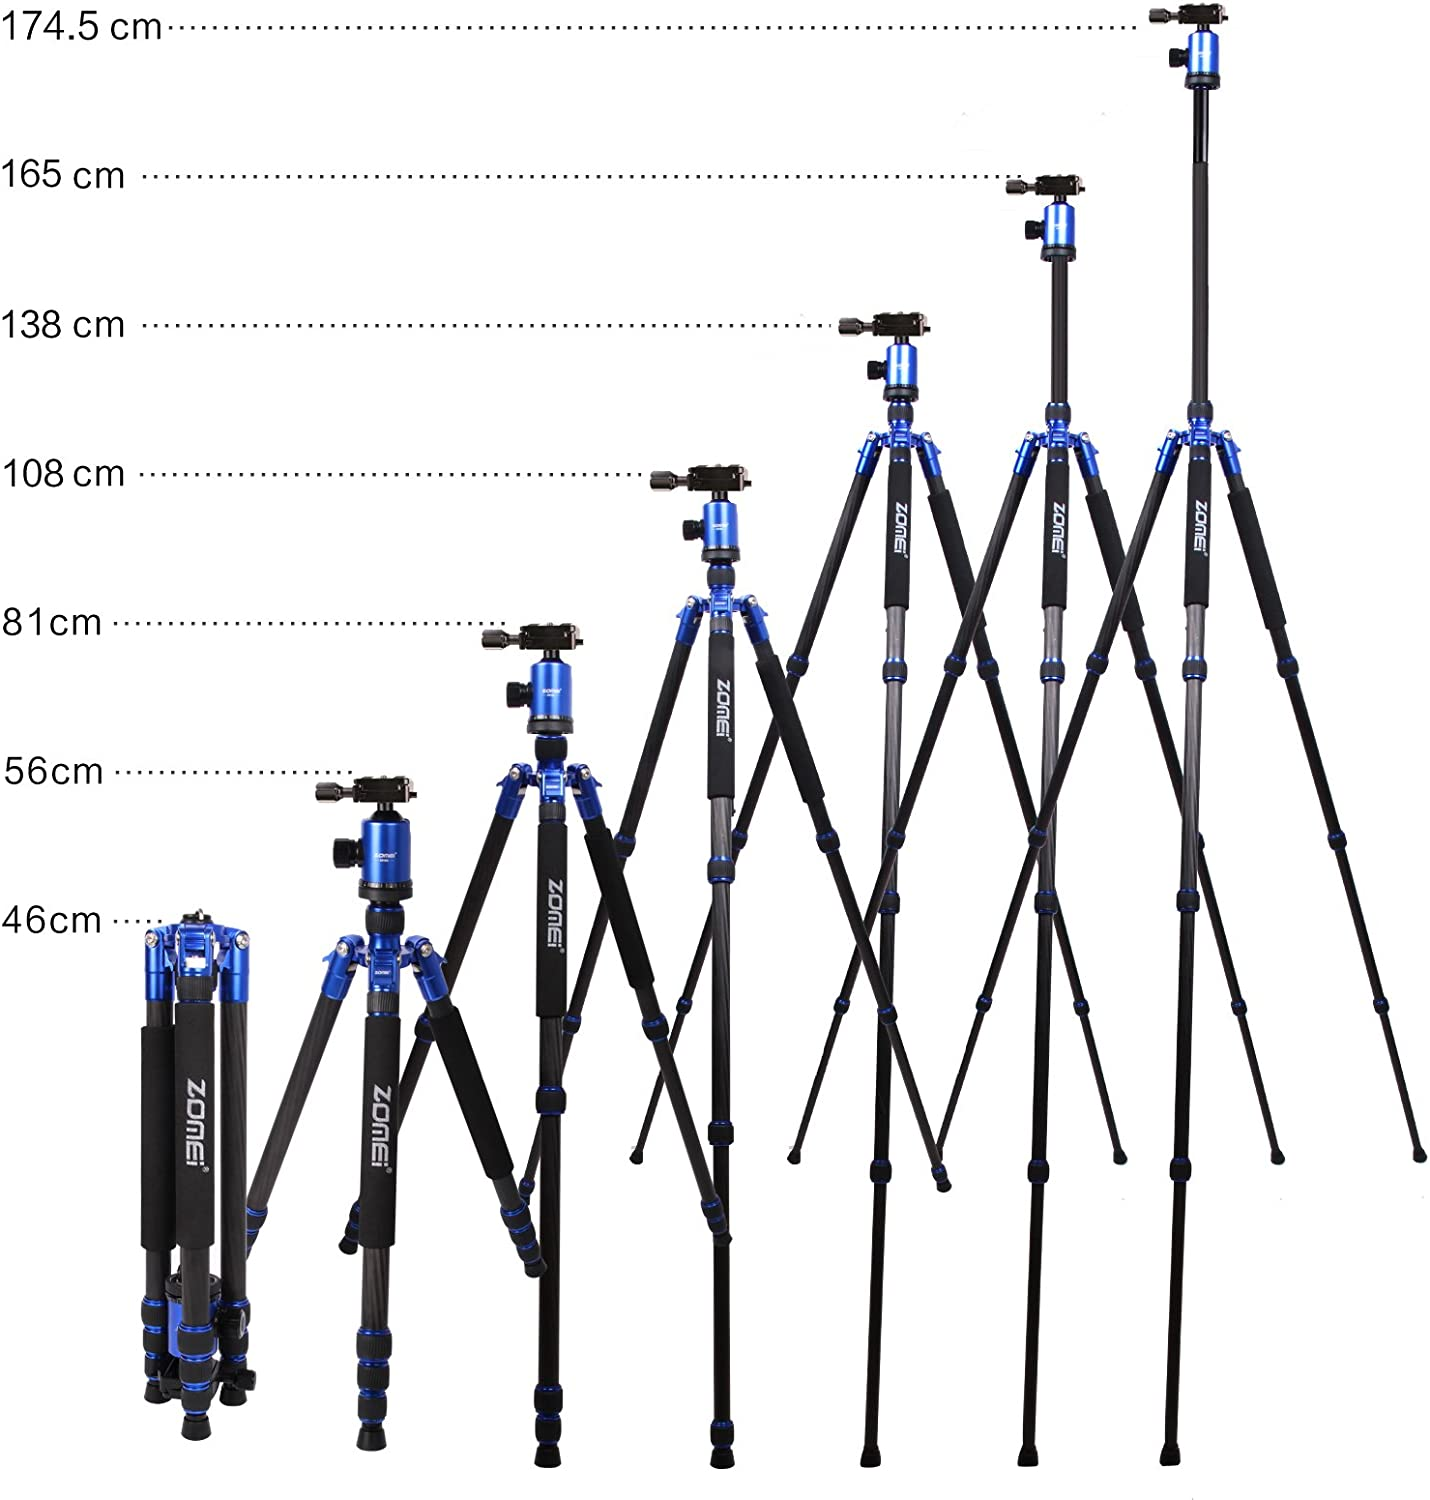 Cameras and Video Camcorder Blue Nikon Panasonic Fuji Zomei Z888C Professional Portable Carbon Fiber Tripod Stand with Ball Head Compact Travel for Canon Sony Olympus